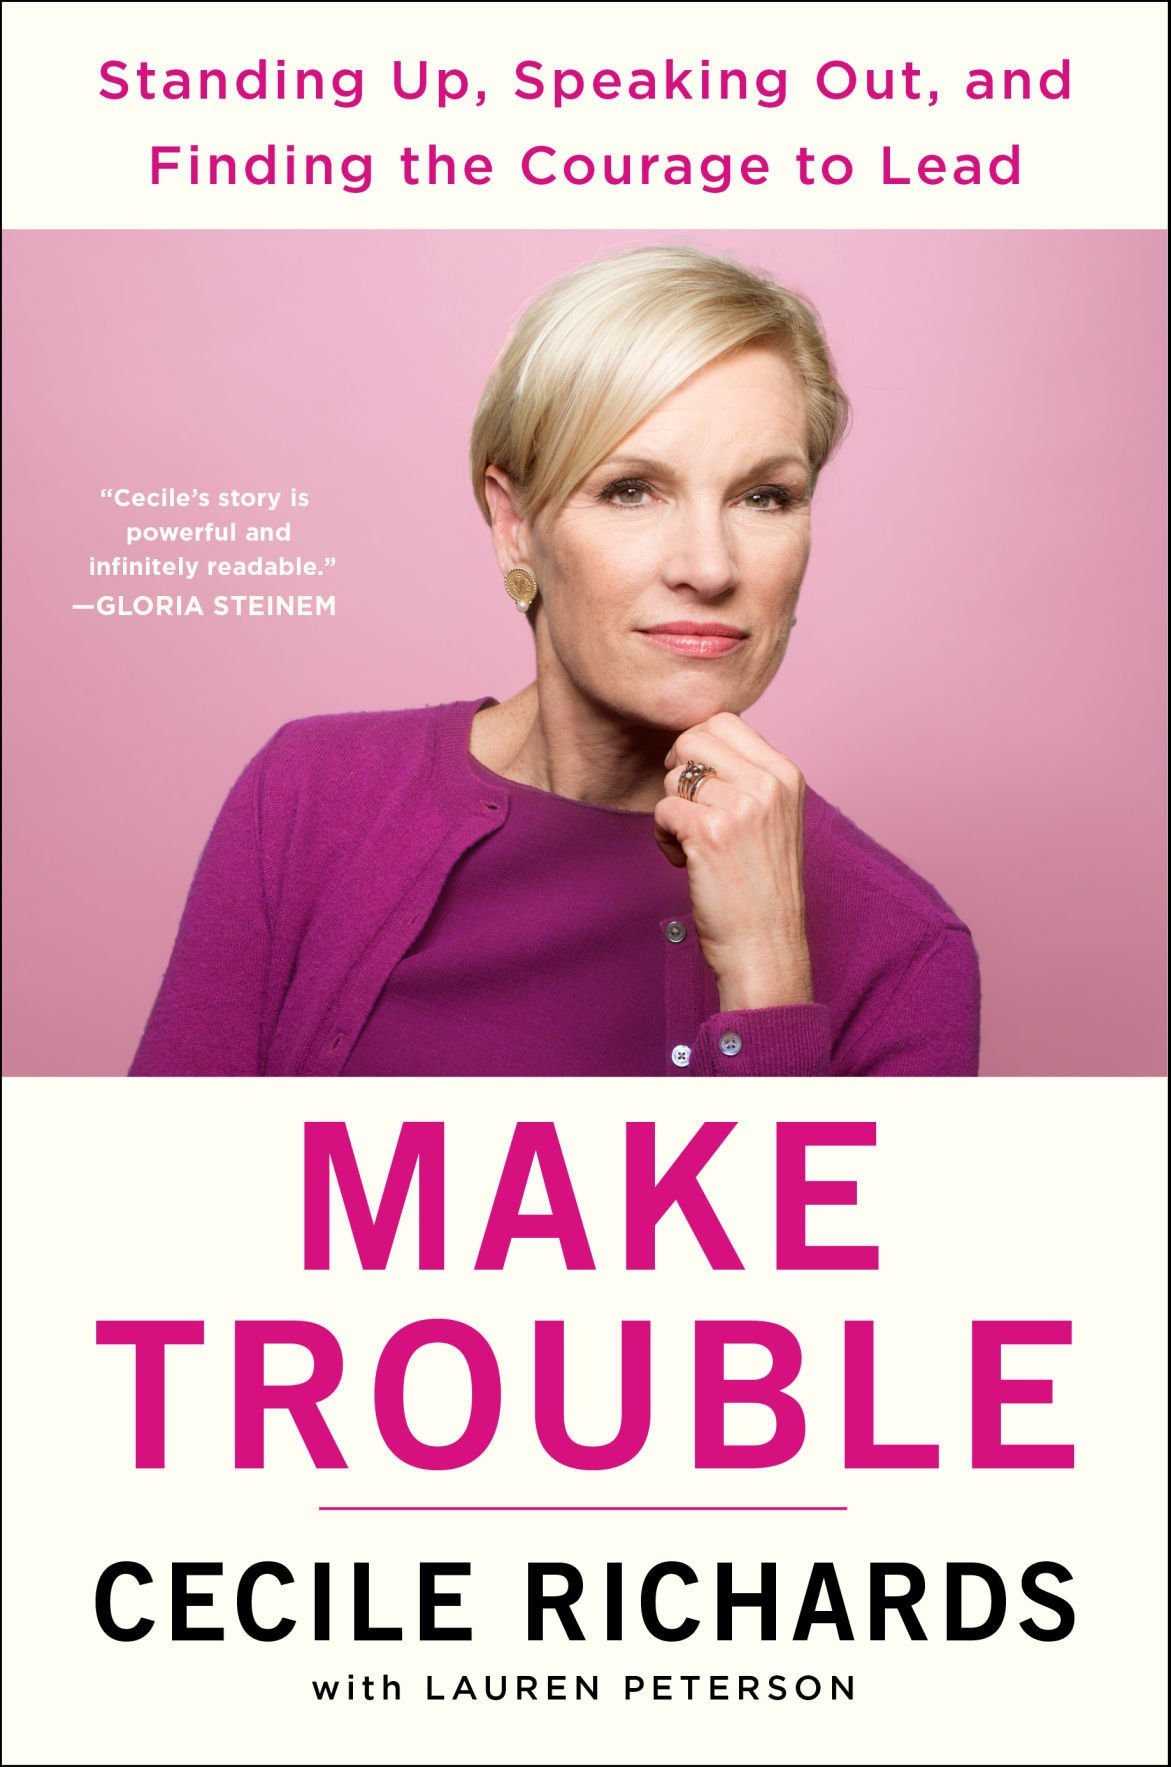 Outgoing president of Planned Parenthood speaks Saturday in Chicago about new book